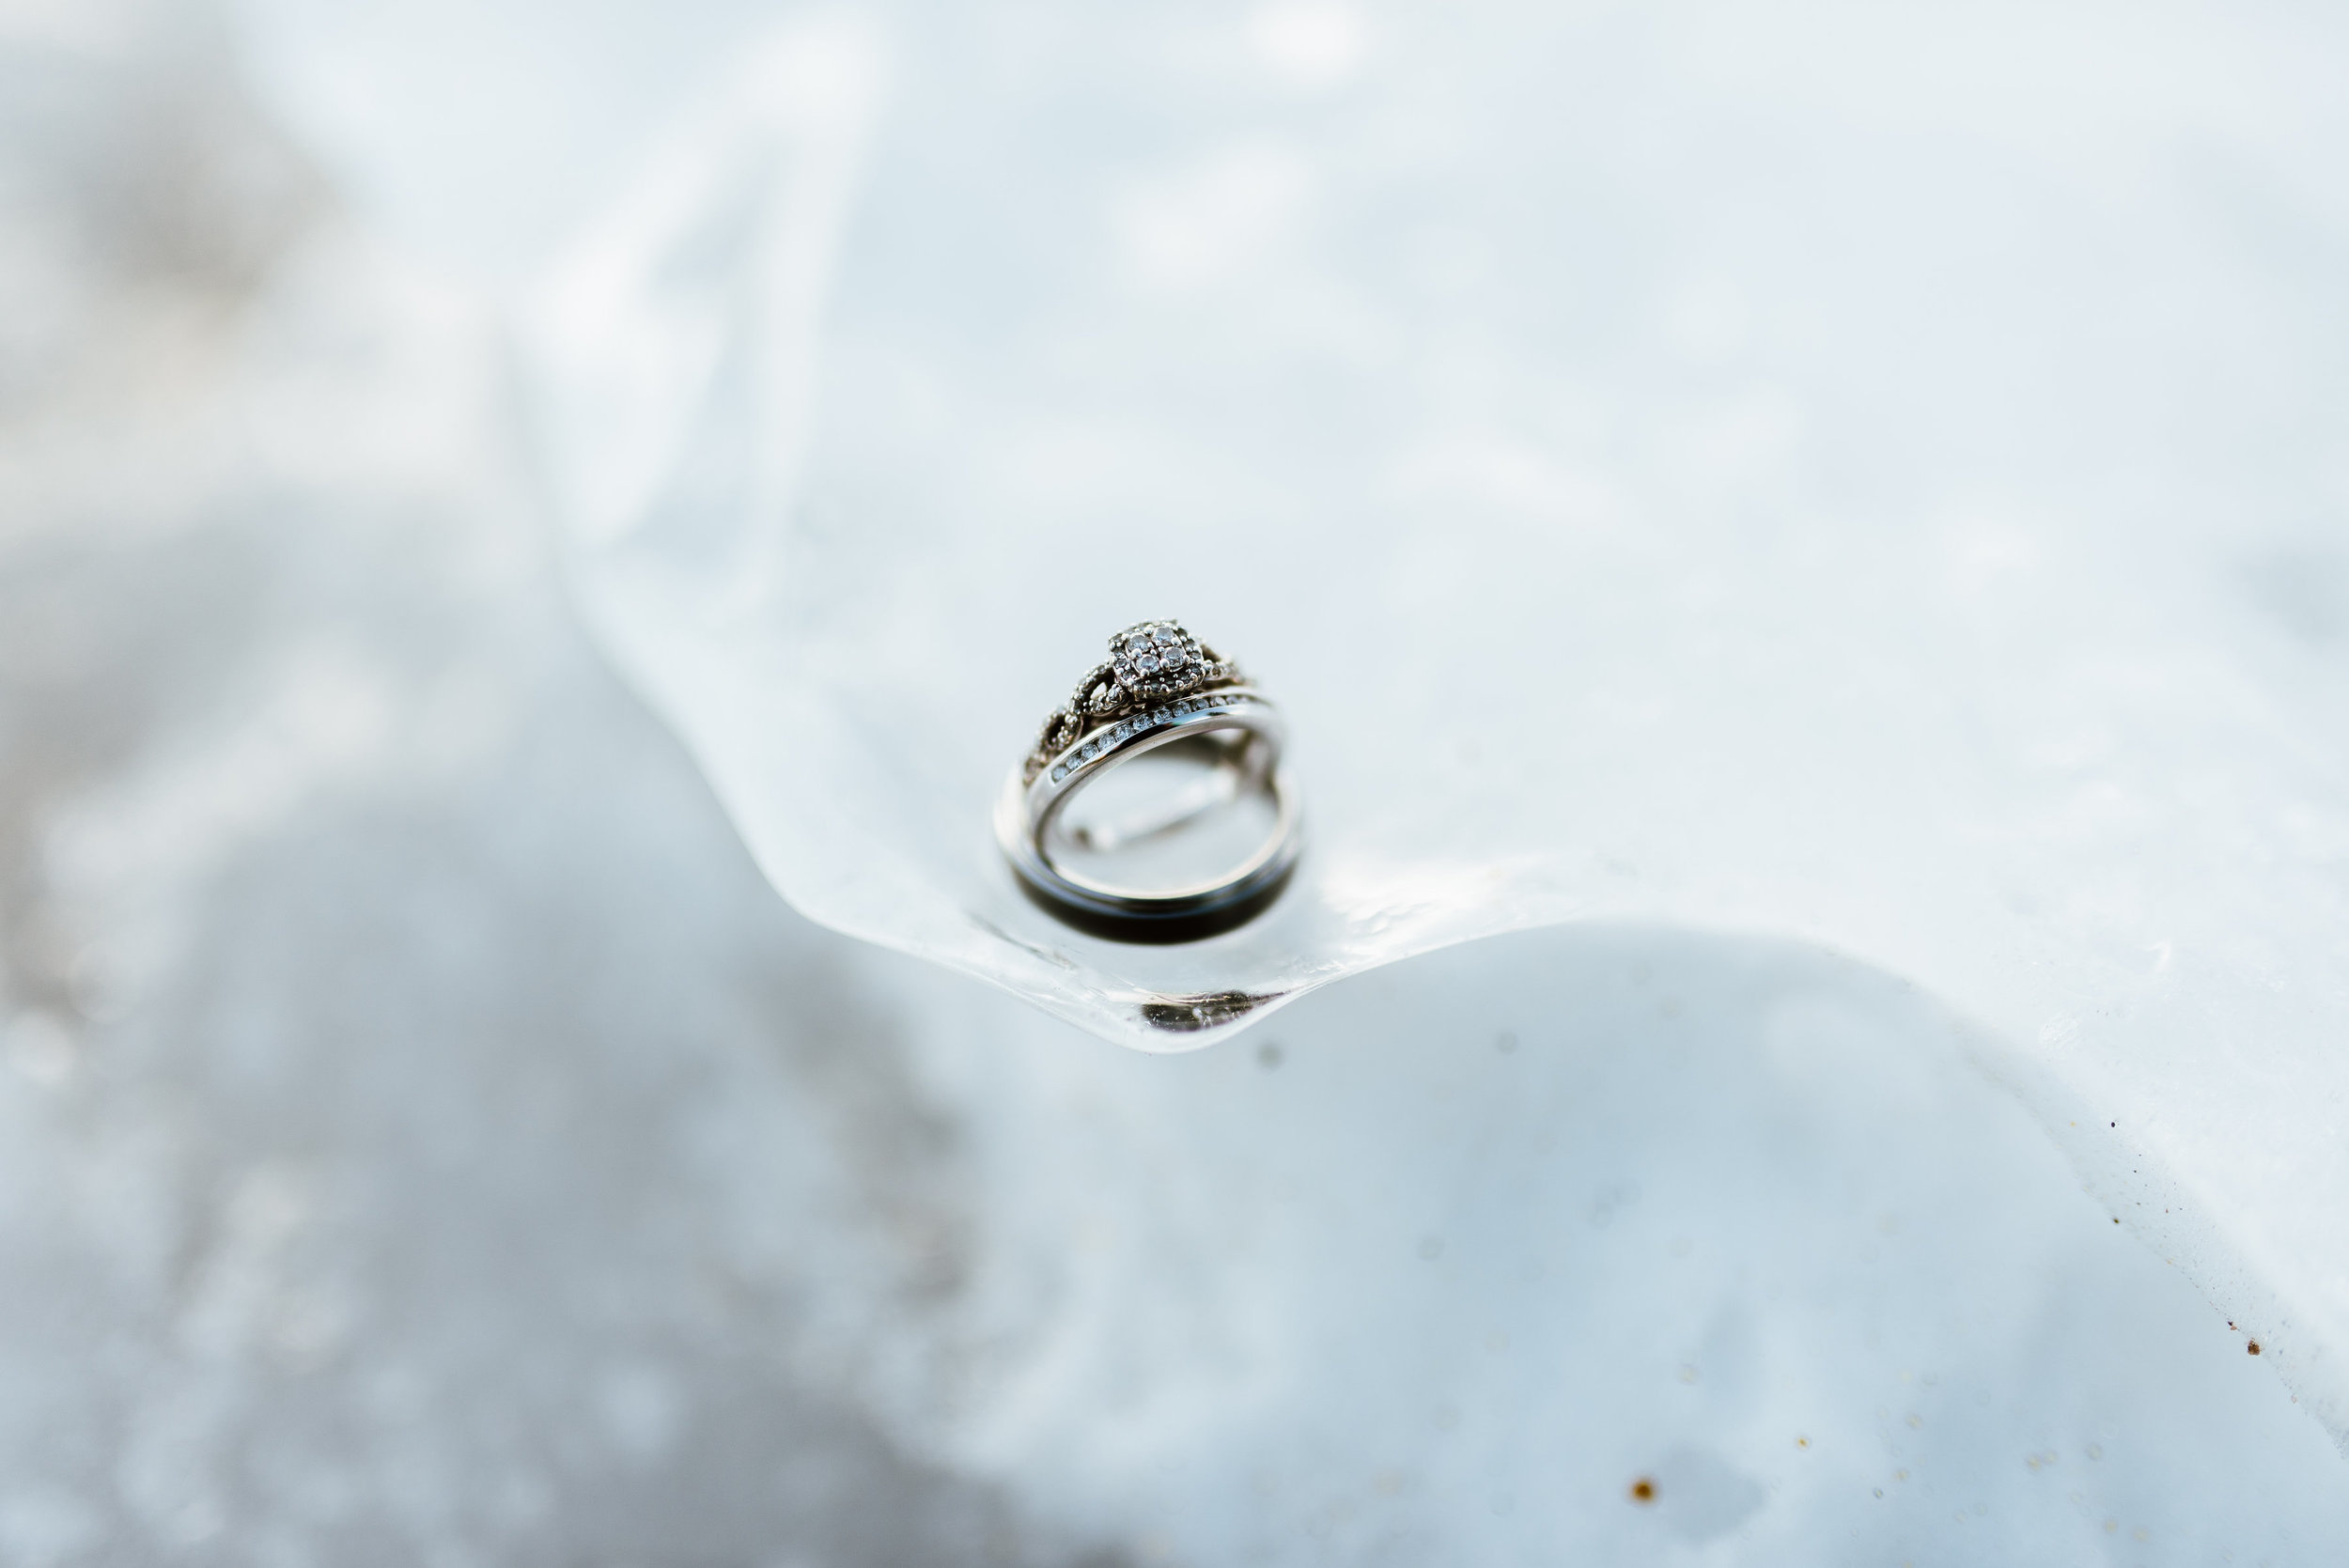 What a gorgeous engagement ring and wedding band set! I love the silver wedding bands against the icy background of St. Mary's Glacier!| Mountain wedding photos by intimate, Colorado elopement photographer, Maddie Mae.